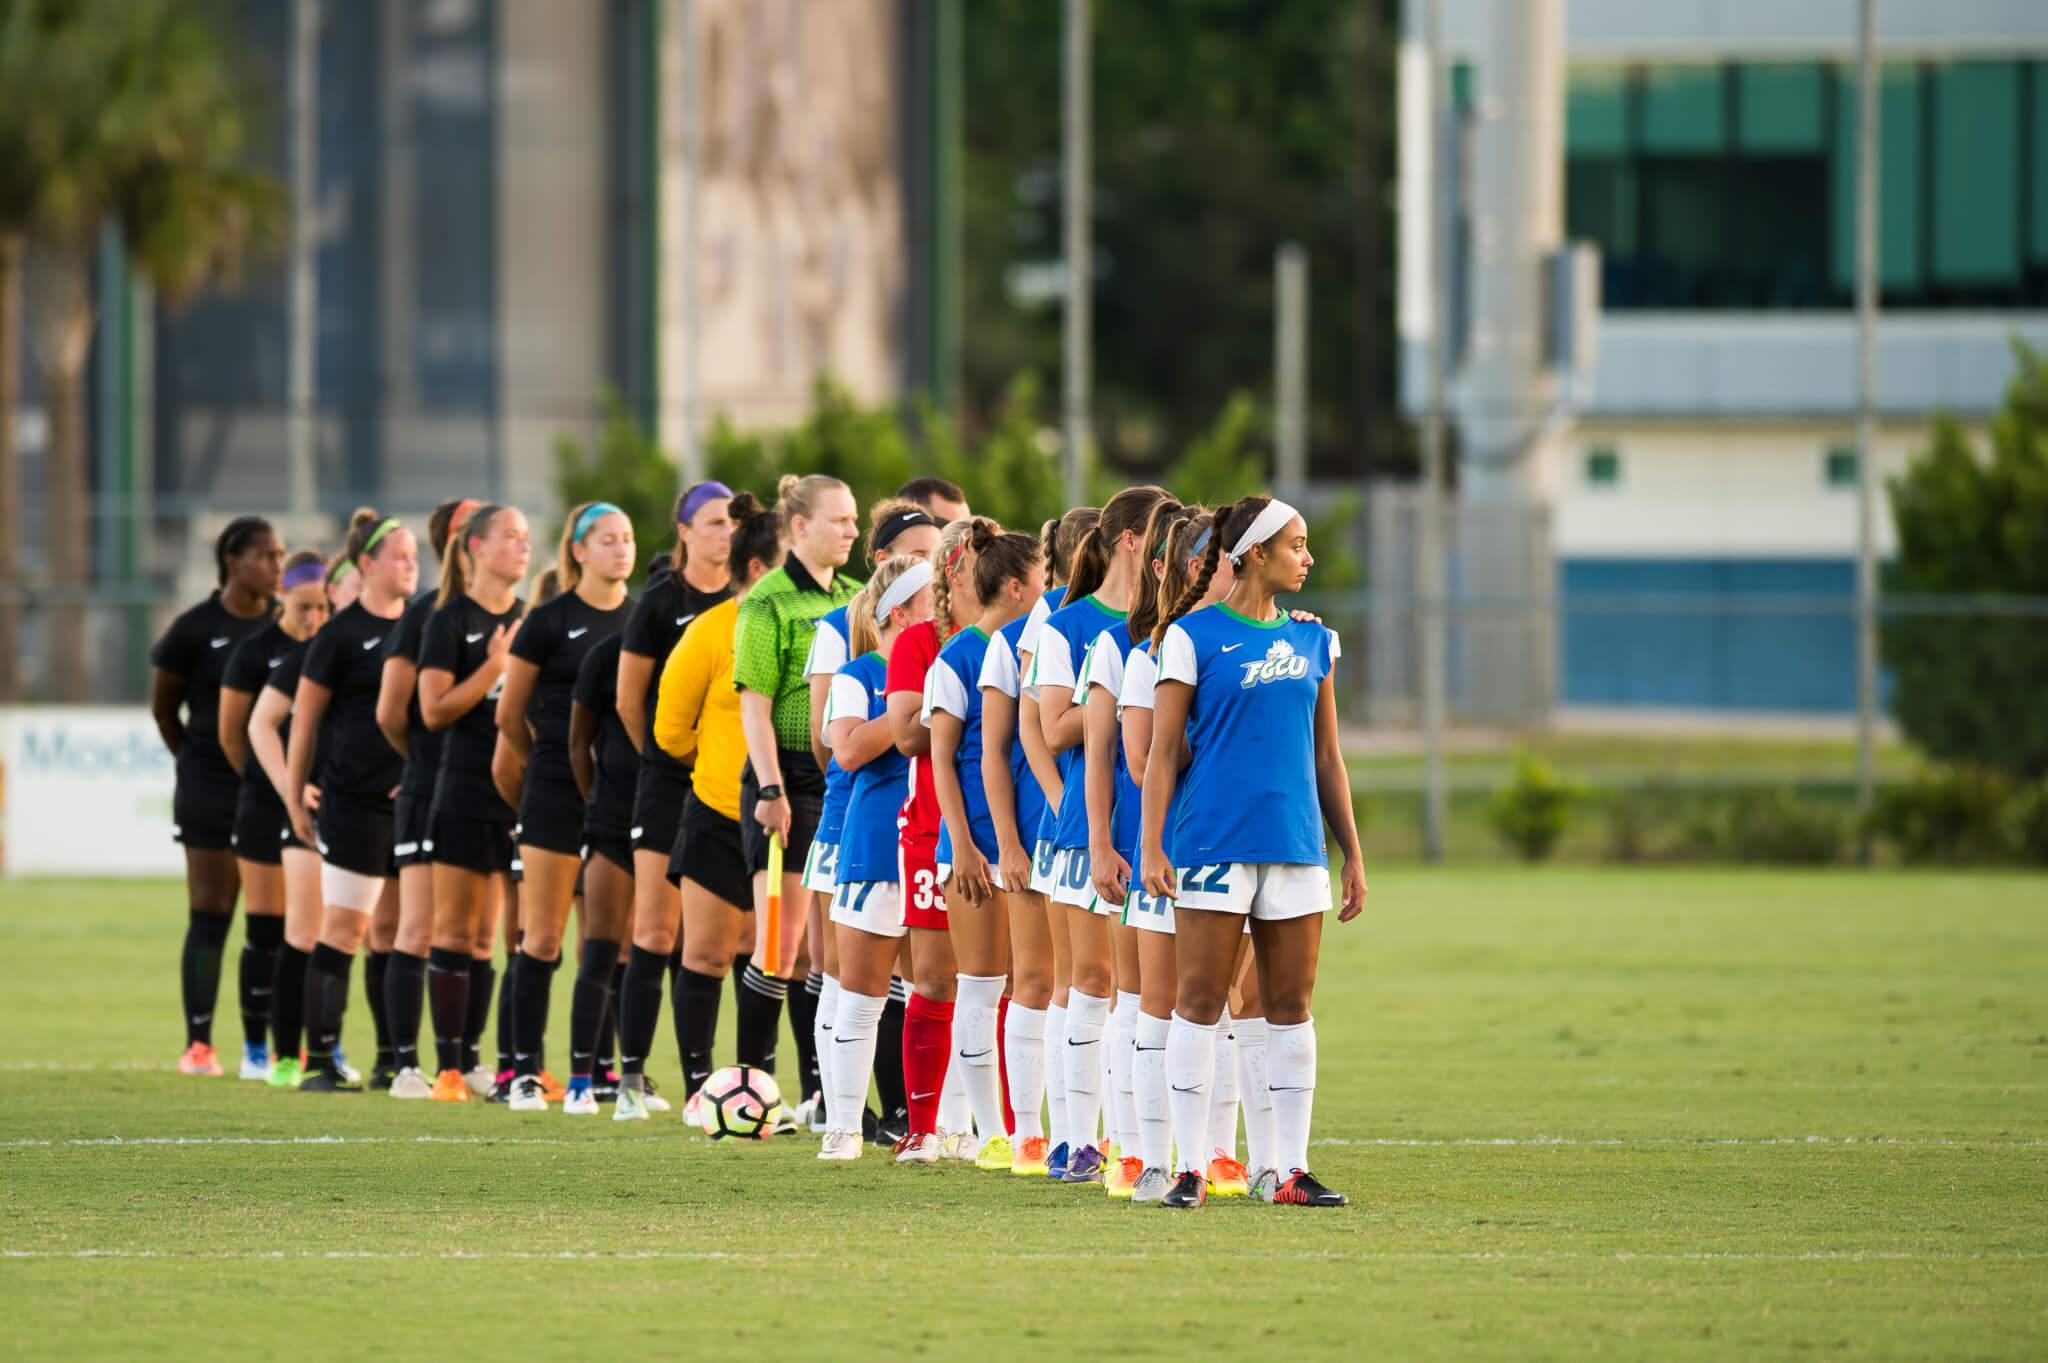 FGCU Women's Soccer plays to a 0-0 draw vs. Stetson